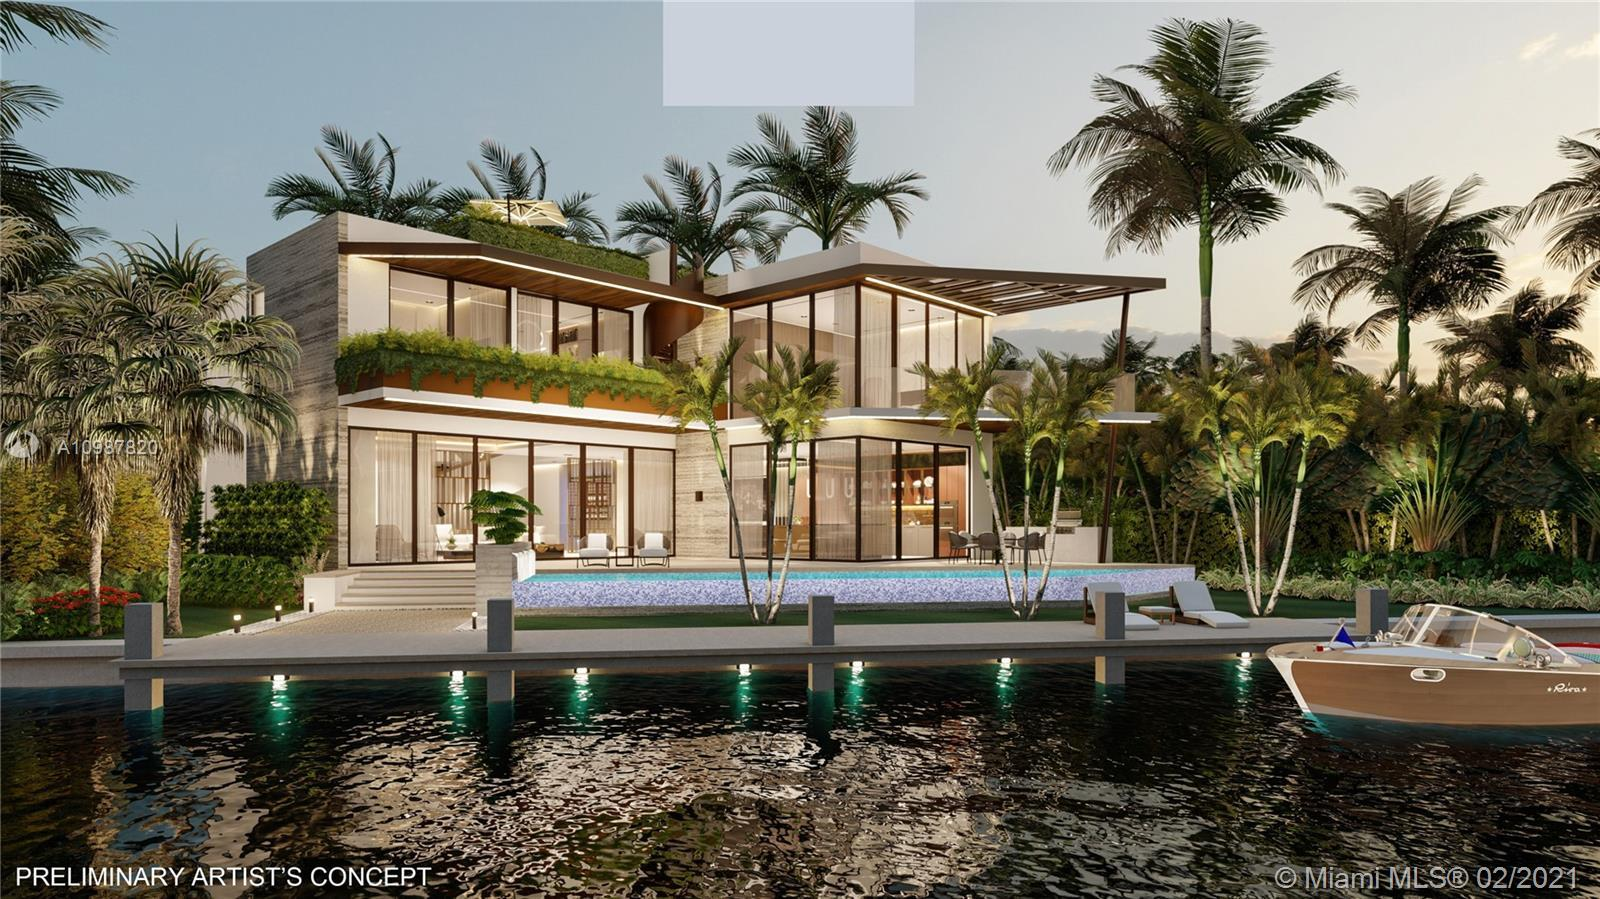 Buildable waterfront lot with 100 feet of waterfront on exclusive North Bay Road - Miami Beach's mos